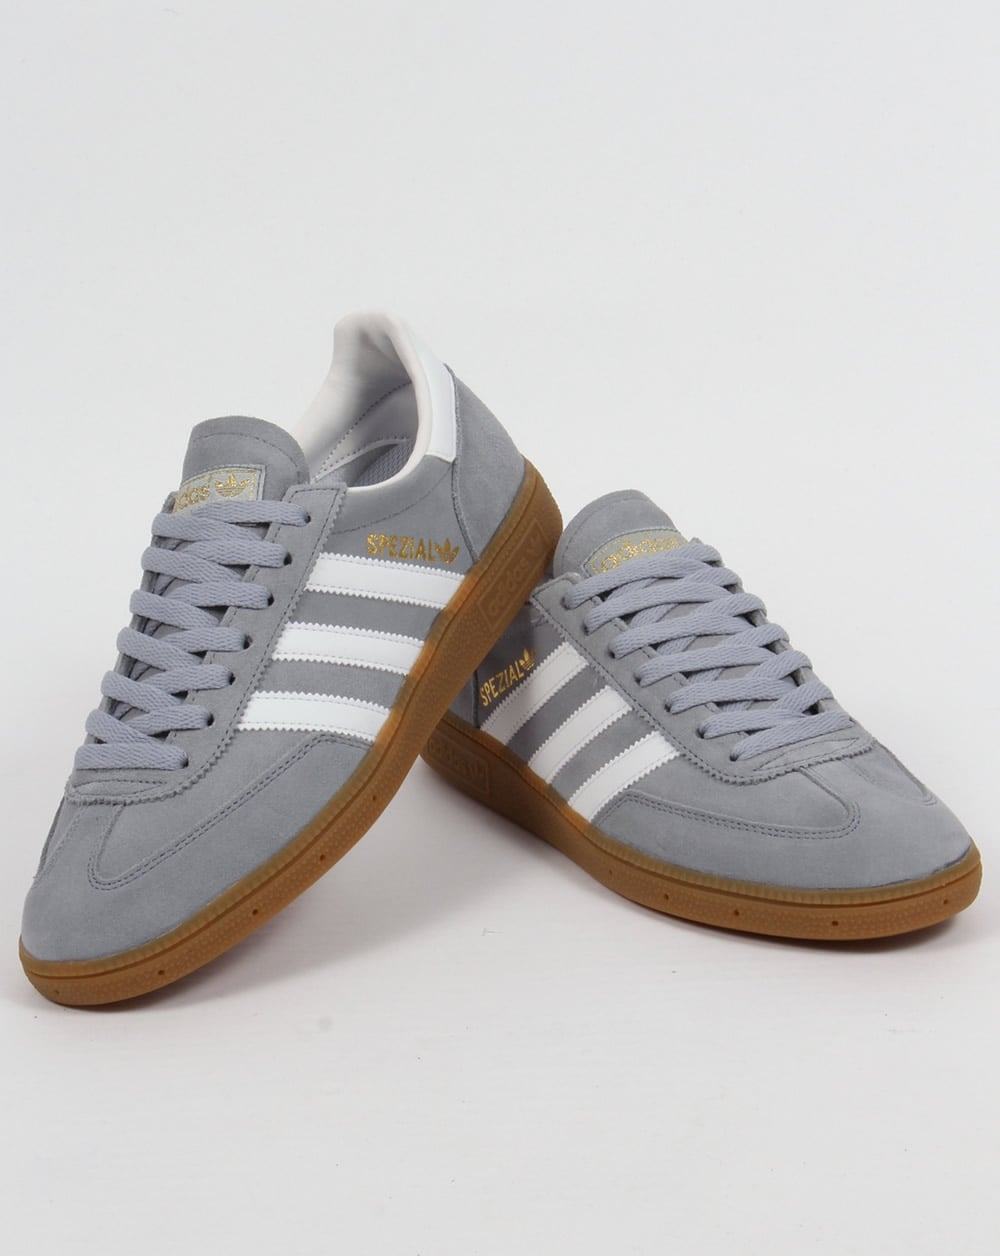 Adidas Spezial Trainers Light Grey/White